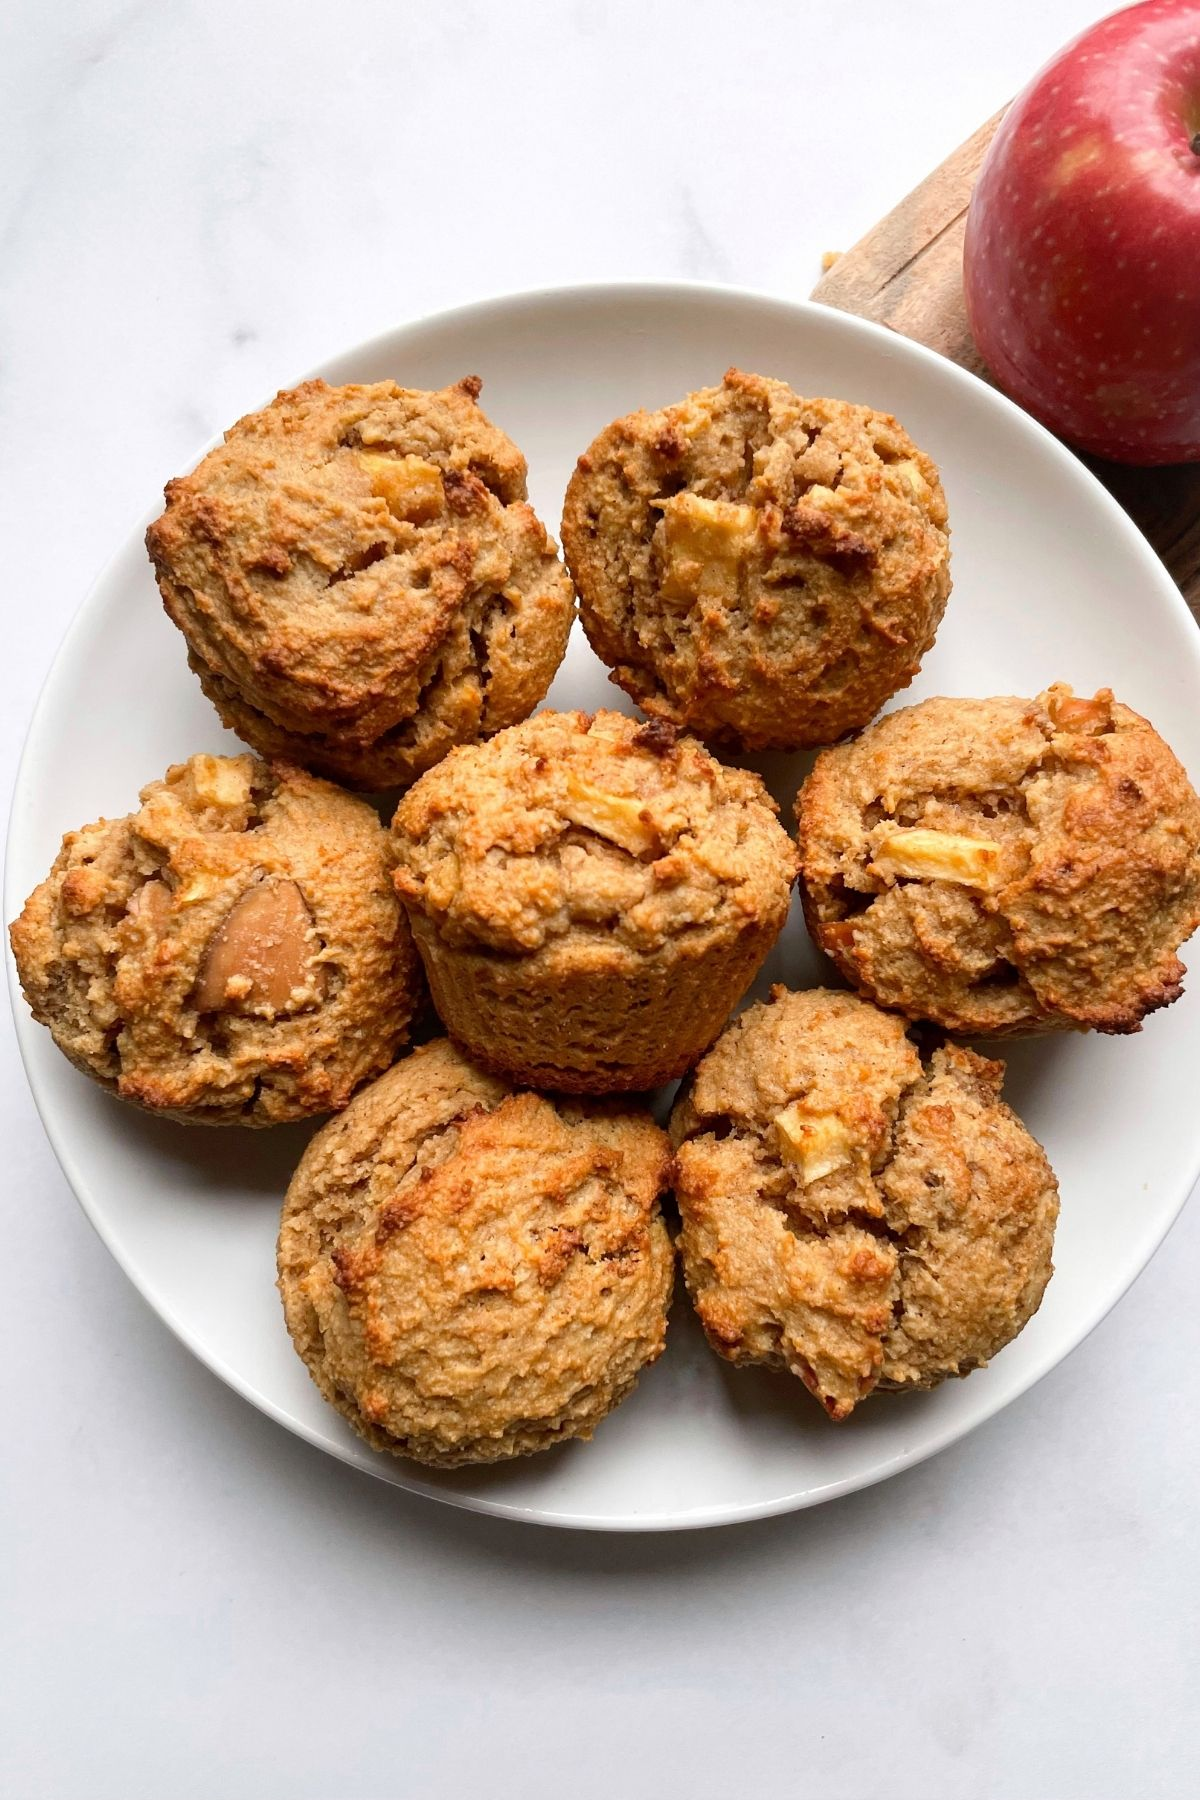 Healthy Peanut Butter Apple Muffins on plate with an apple in the background